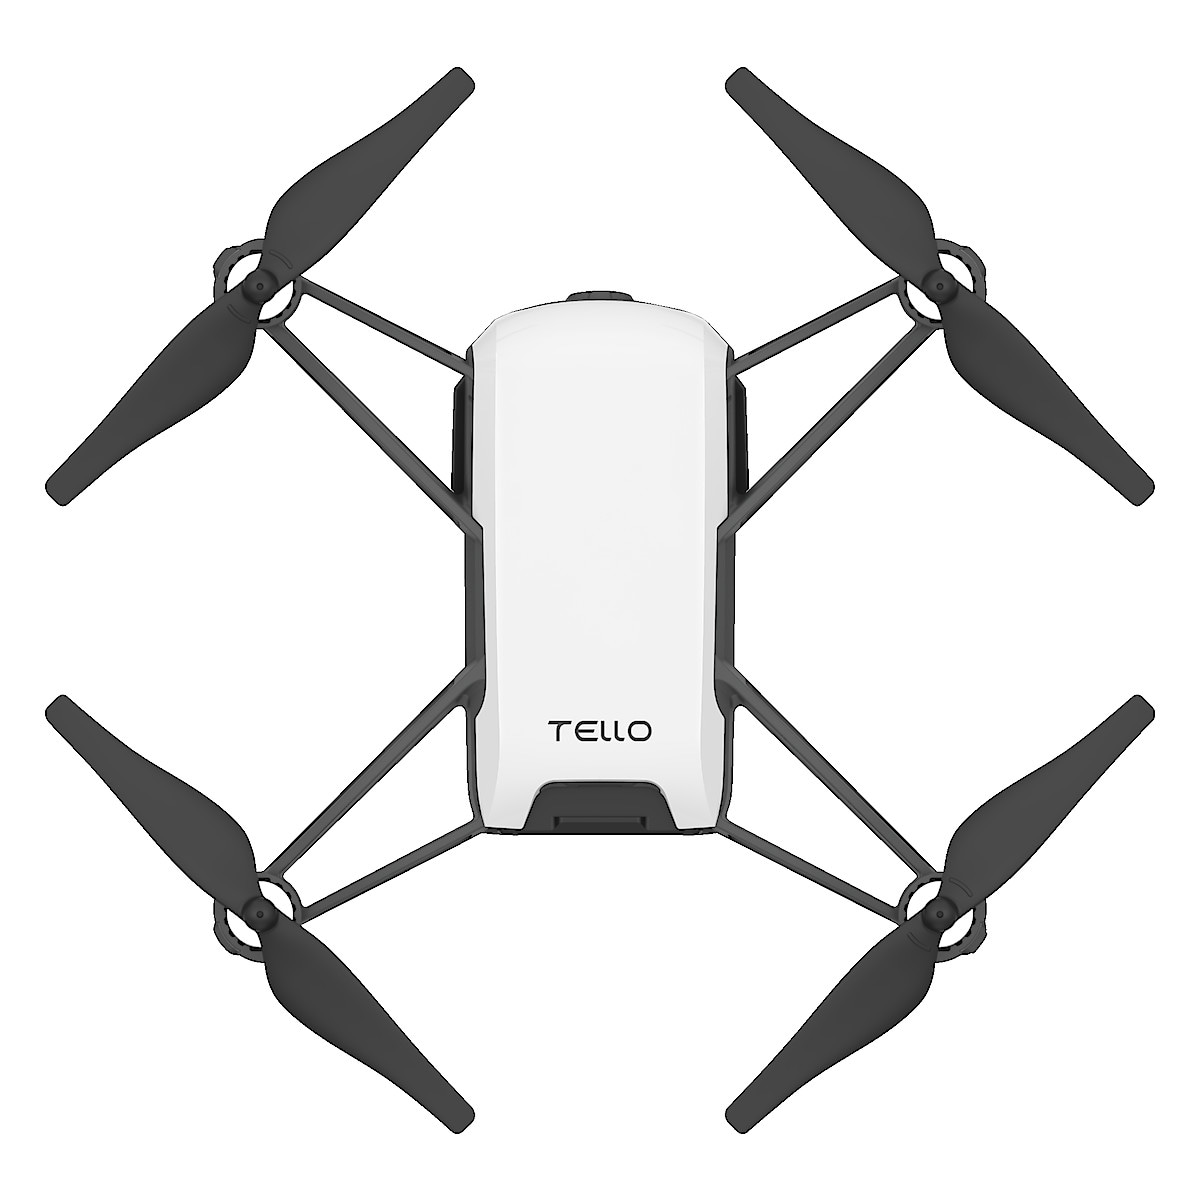 Ryze Tello powered by DJI, drone med kamera